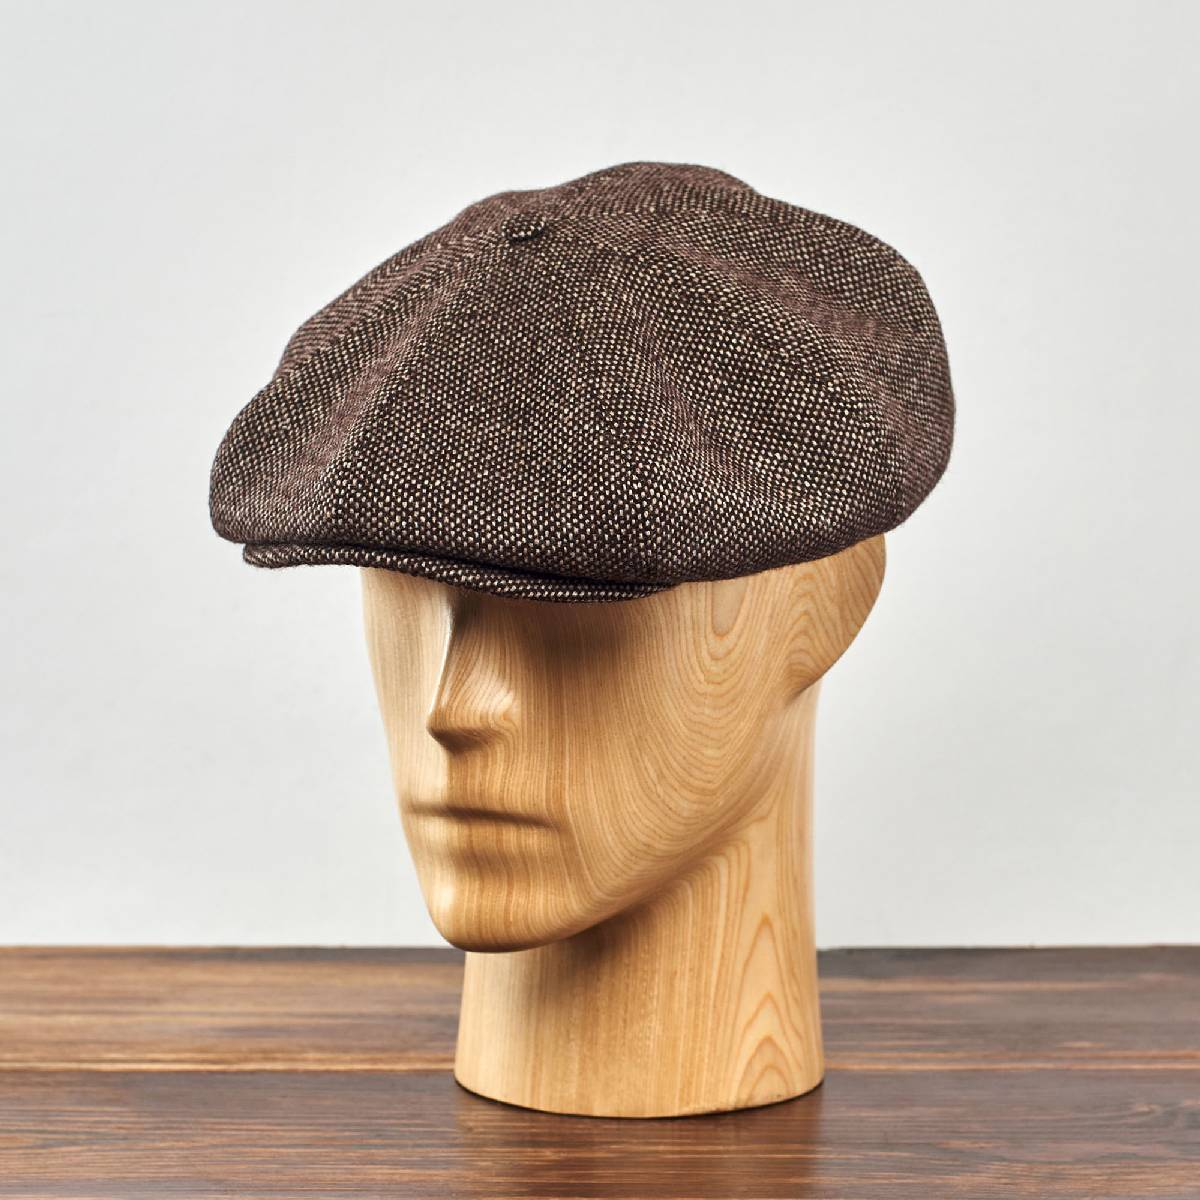 Tweed wool 8 panels newsboy apple cap peaky blinders bandit hooligan ivy league Shelby hat Gatsby baker boy newsboy poor boy